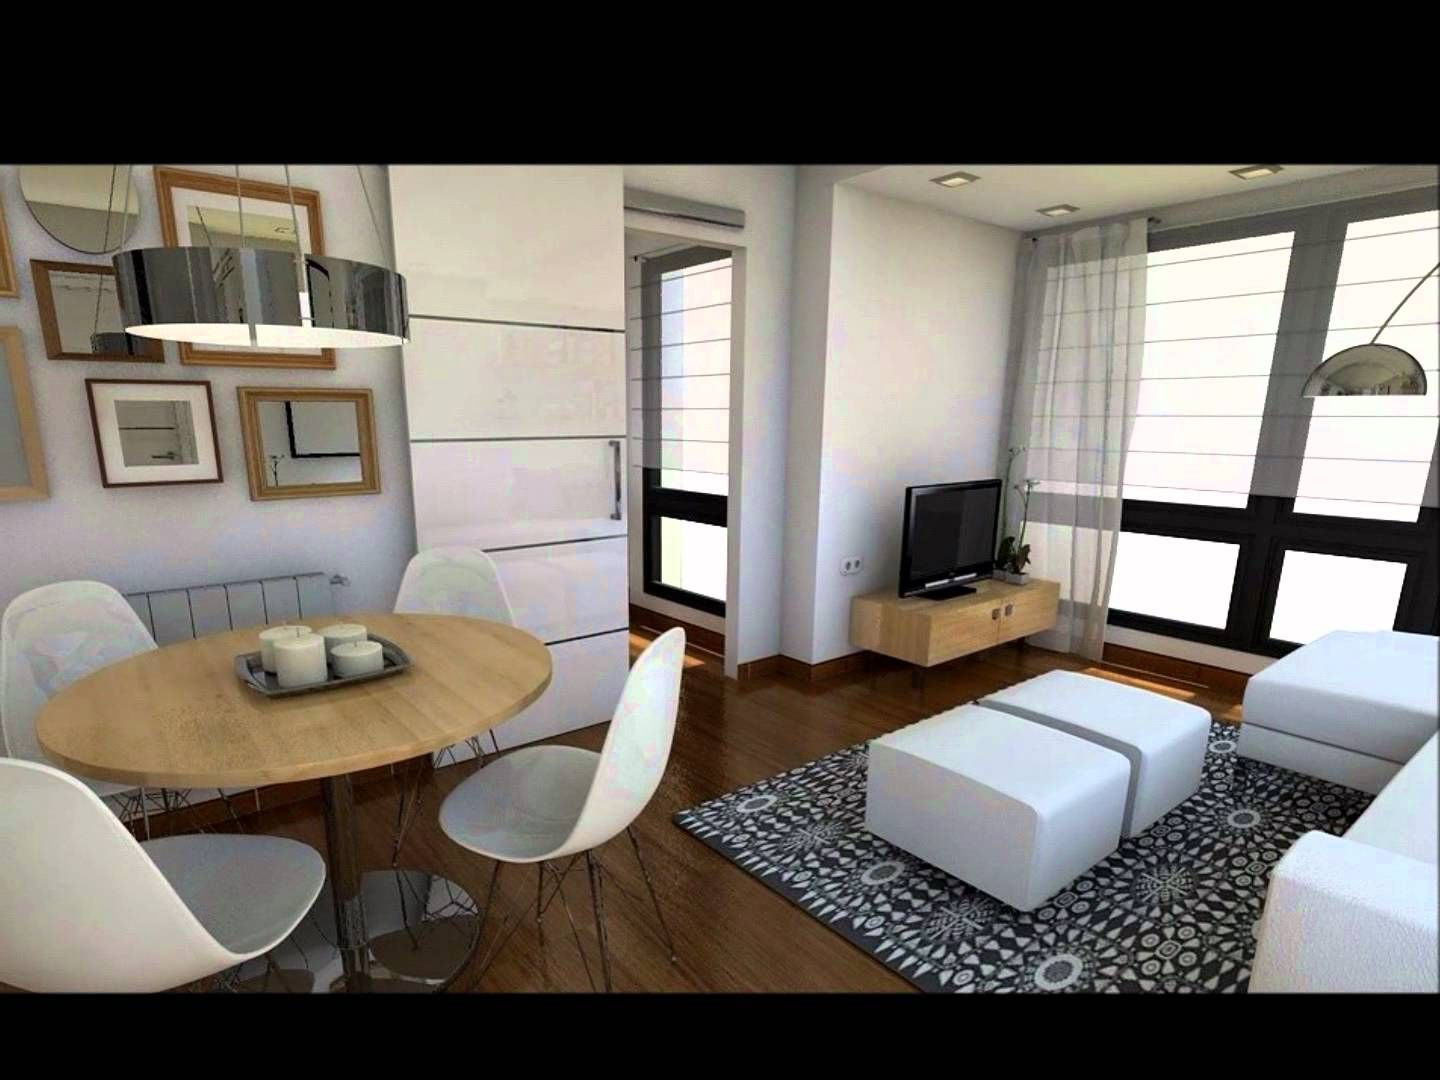 Dise o interior apartamento 40 m2 decoracion for Decoracion casas 40 metros